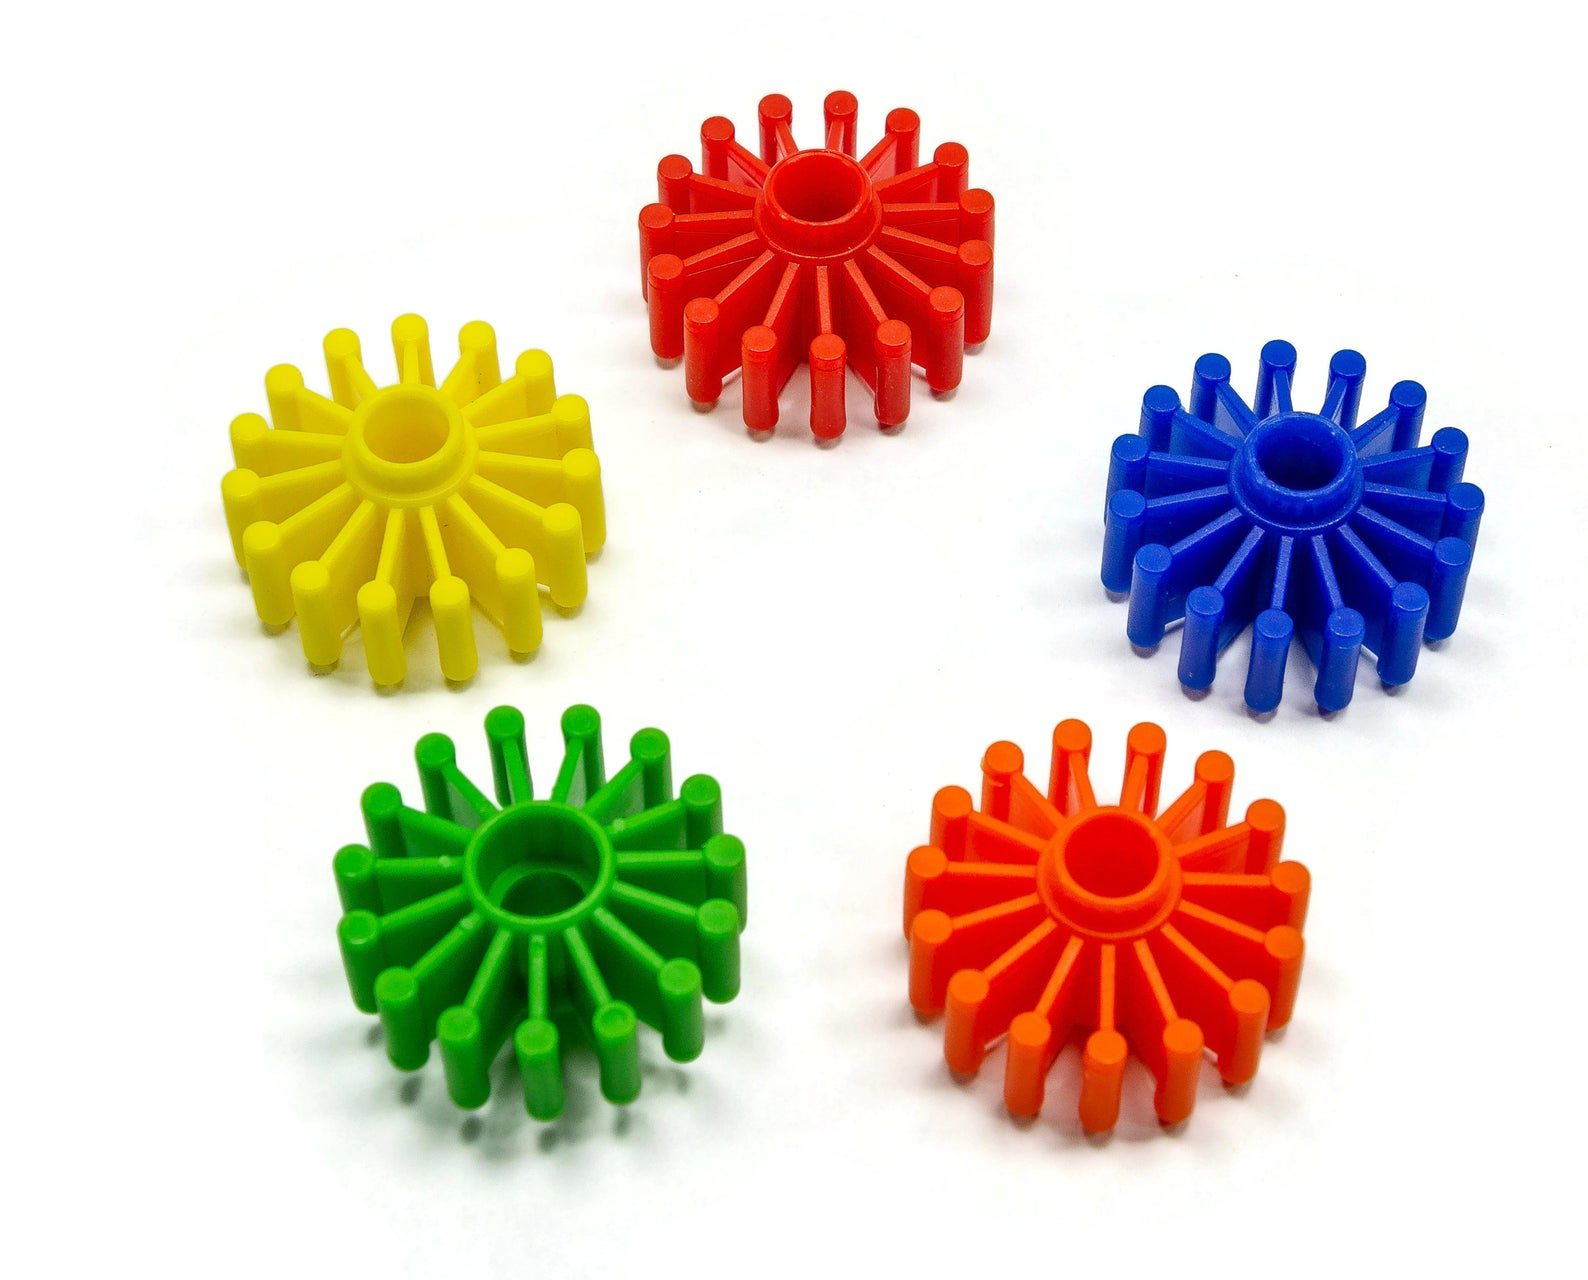 Large Gears - Bird Toy Part